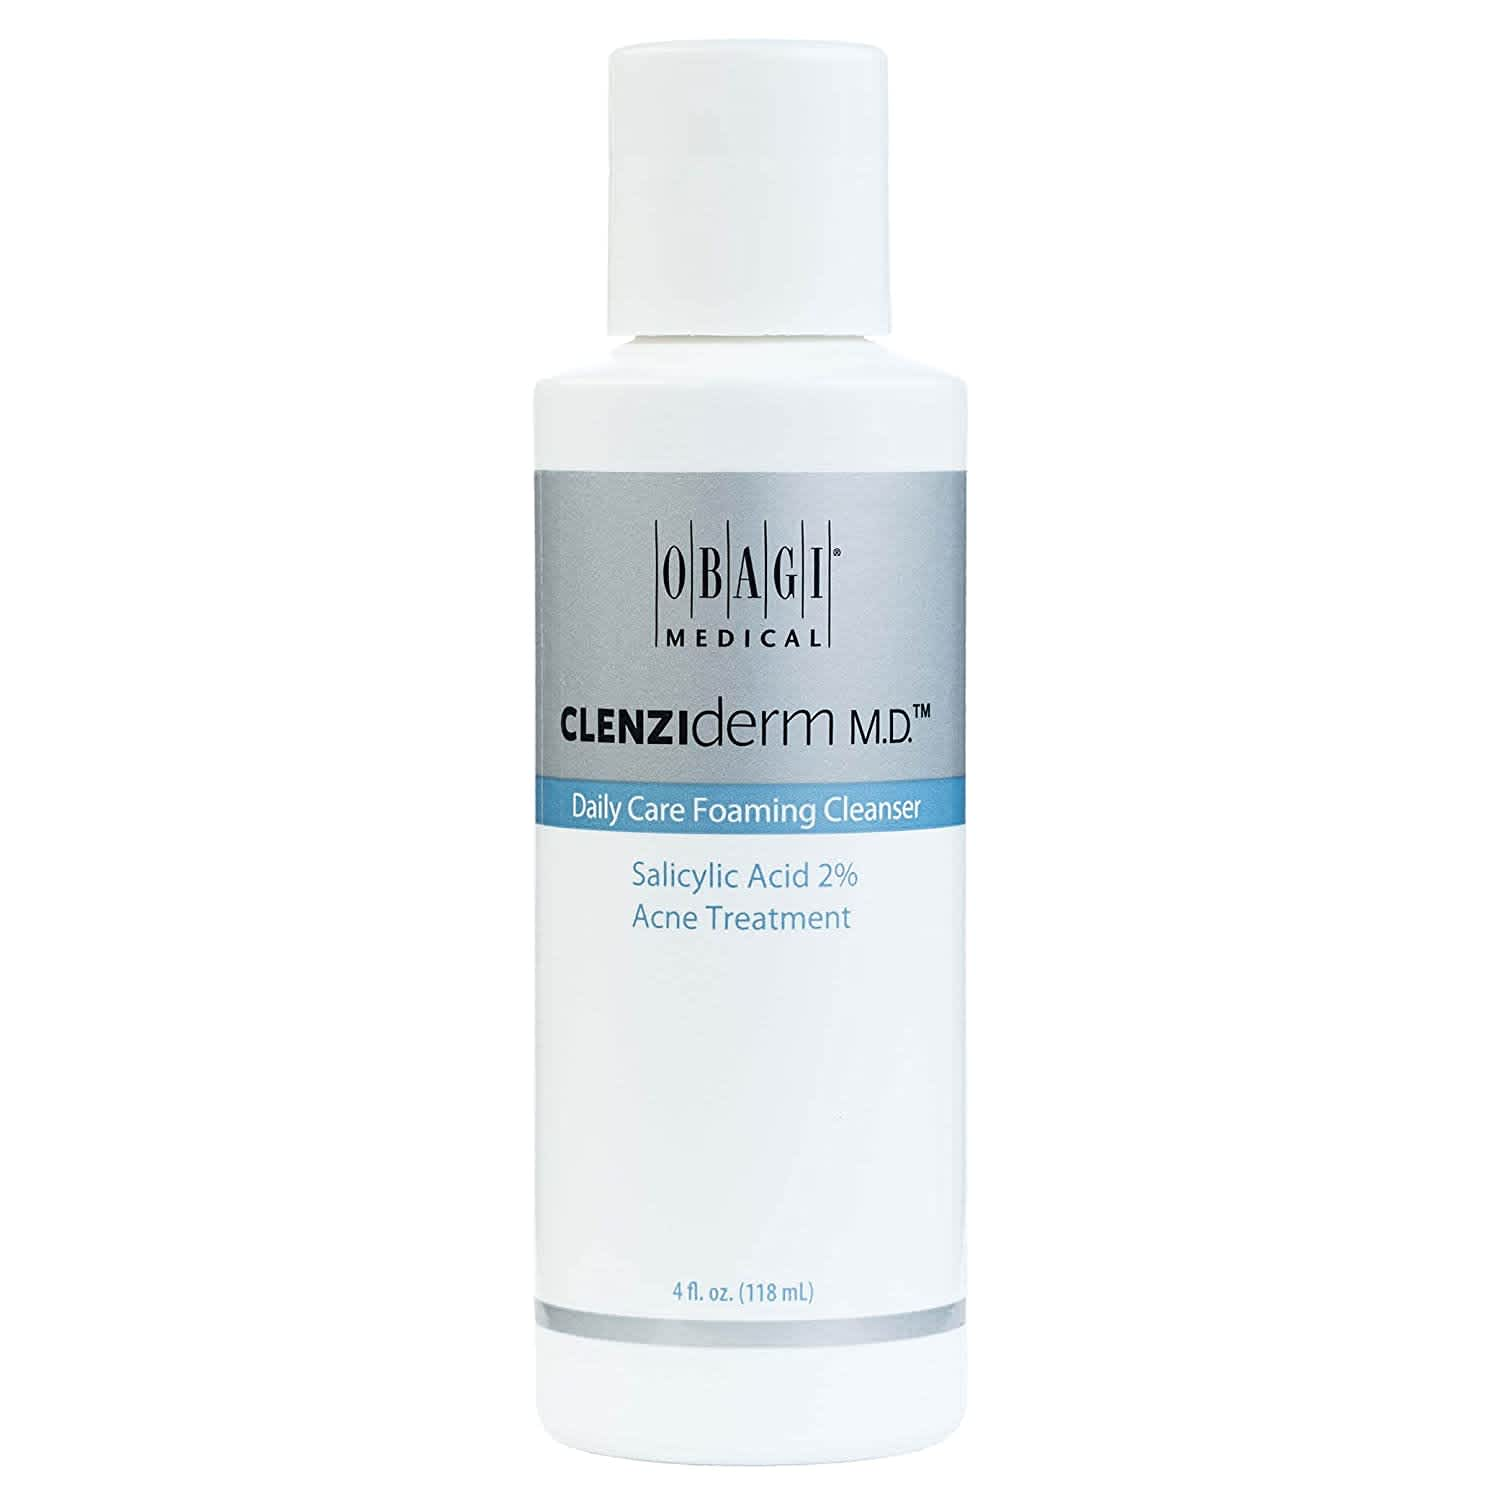 Obagi Medical CLENZIderm M.D. Daily Care Foaming Acne Cleanser